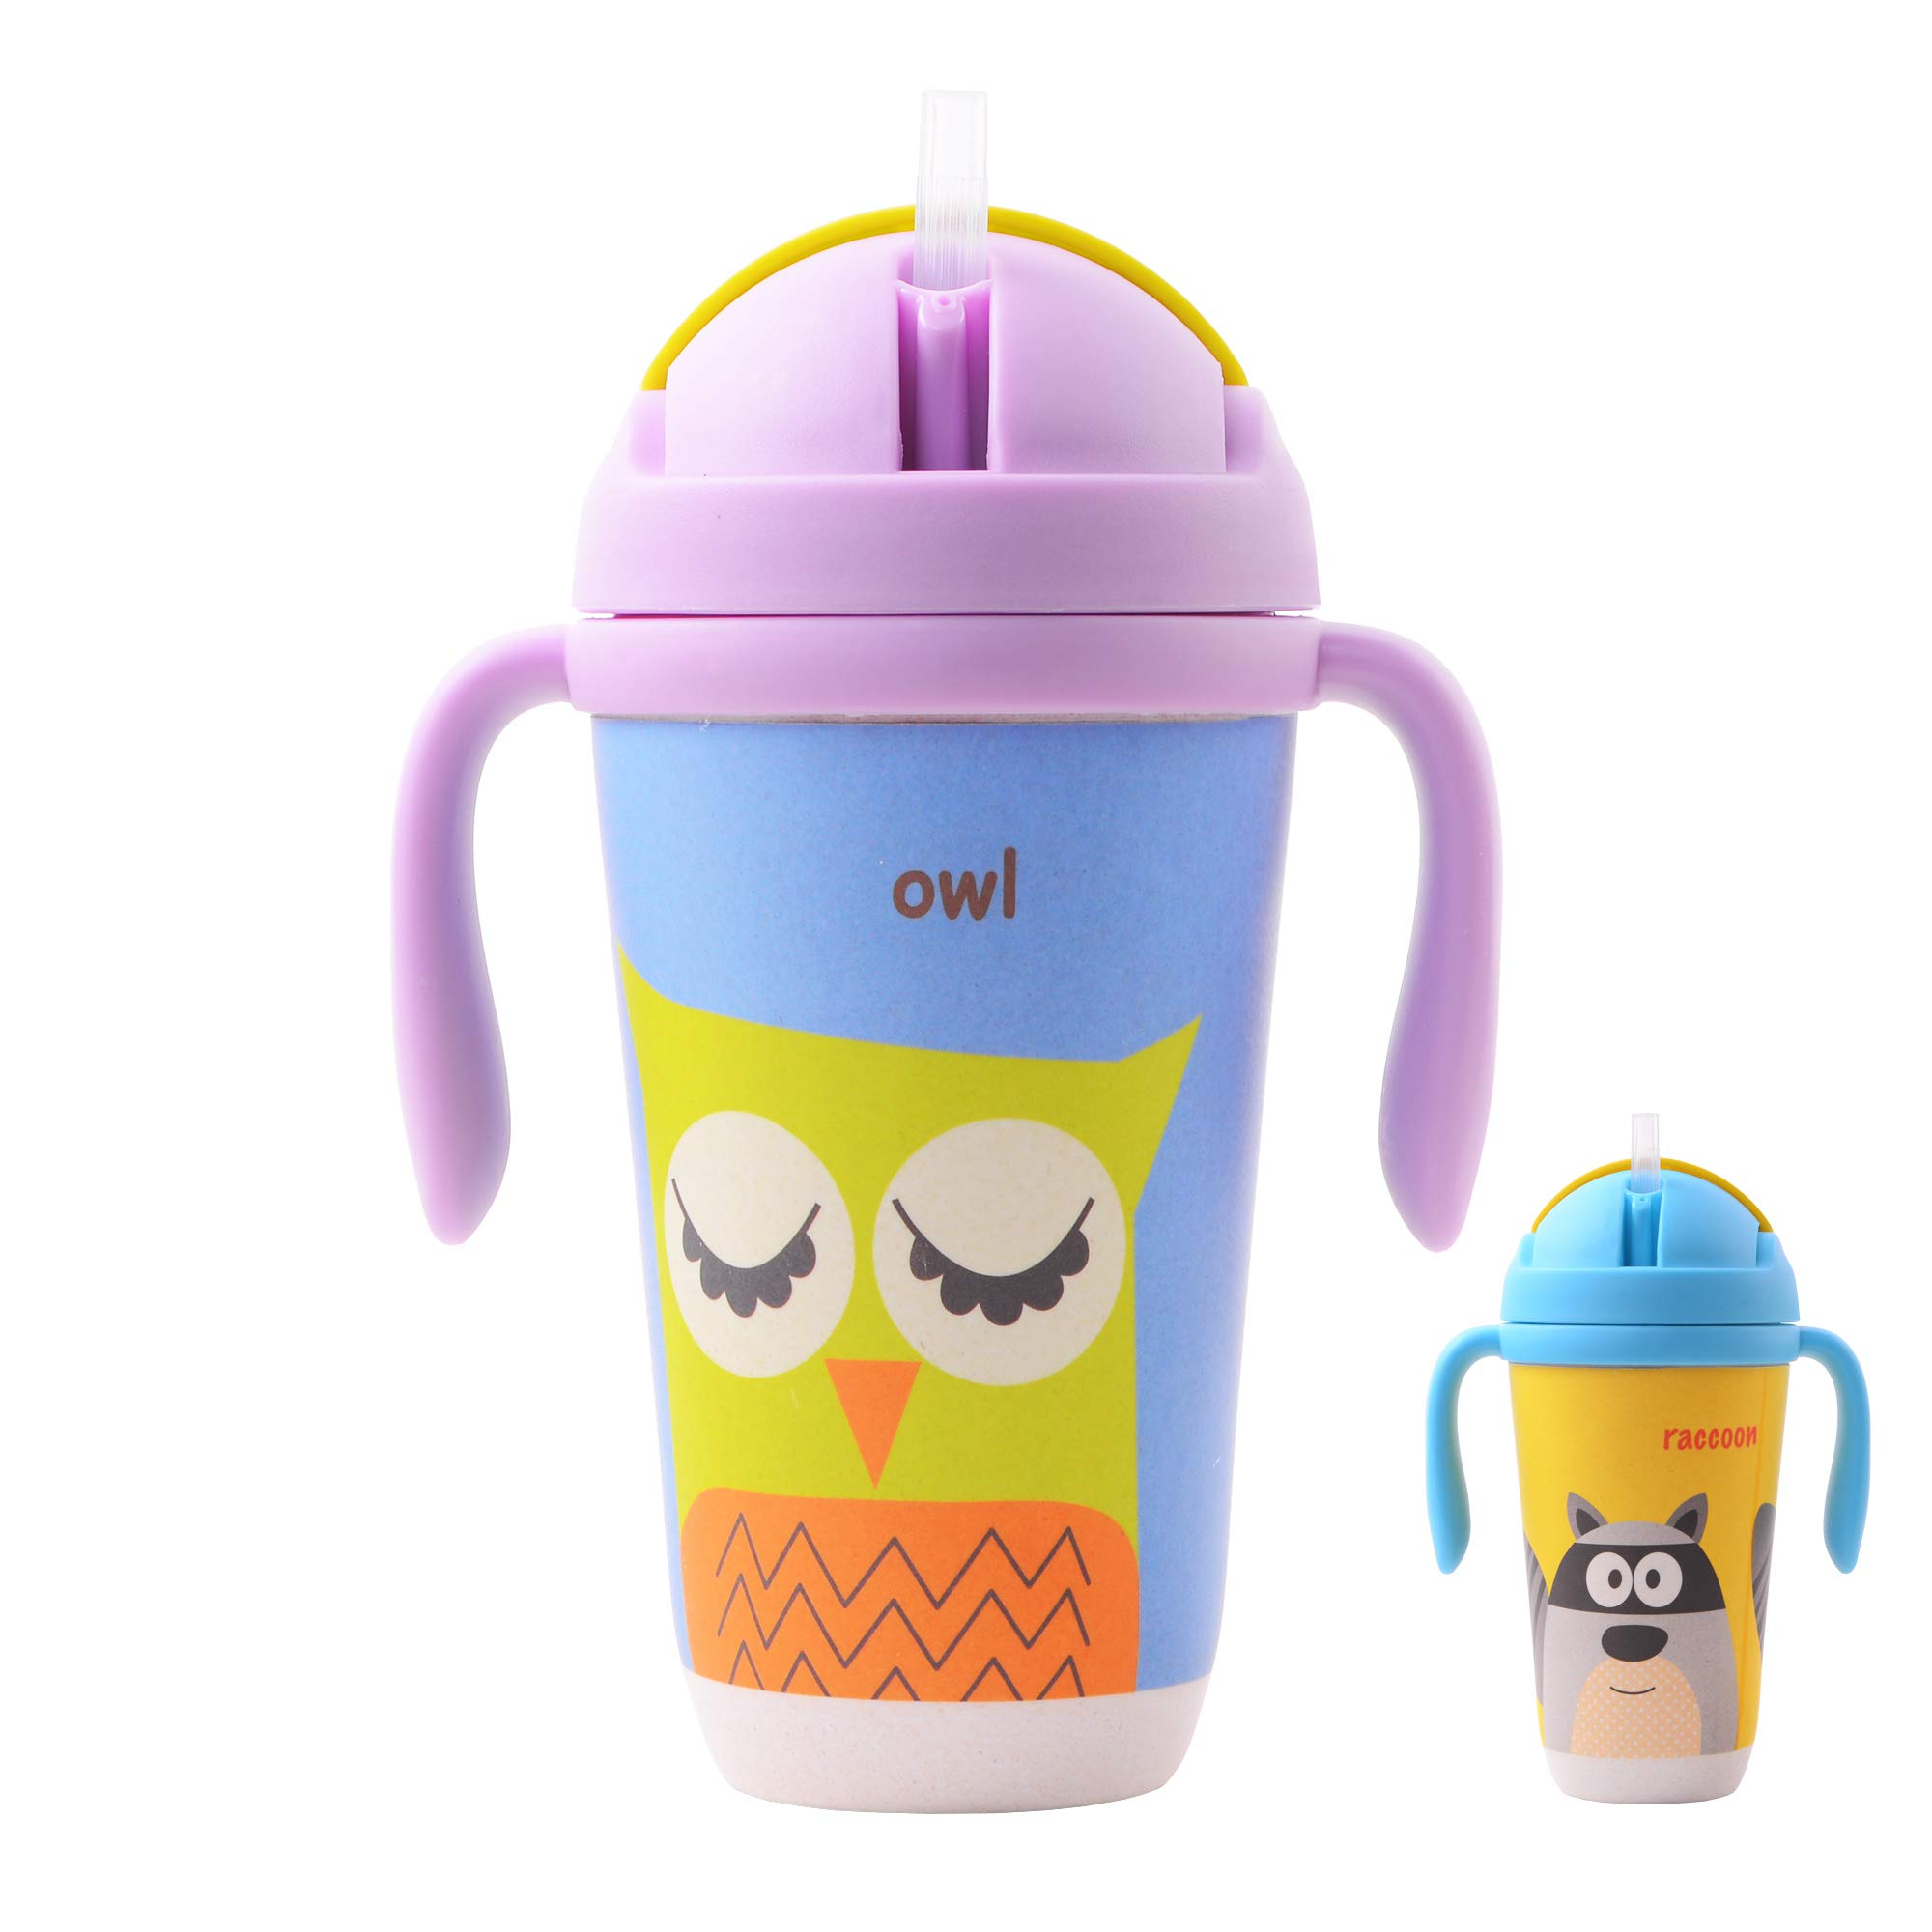 Bamboo Kids Straw Cup, Kids Cups with Lids and Straws, Bamboo Toddler Cups, Bamboo Fiber Drinking Cups, Eco Friendly drinkware for Kids, Bamboo Kids Cups for Everyday Use, Owl Design (Yellow, Blue)